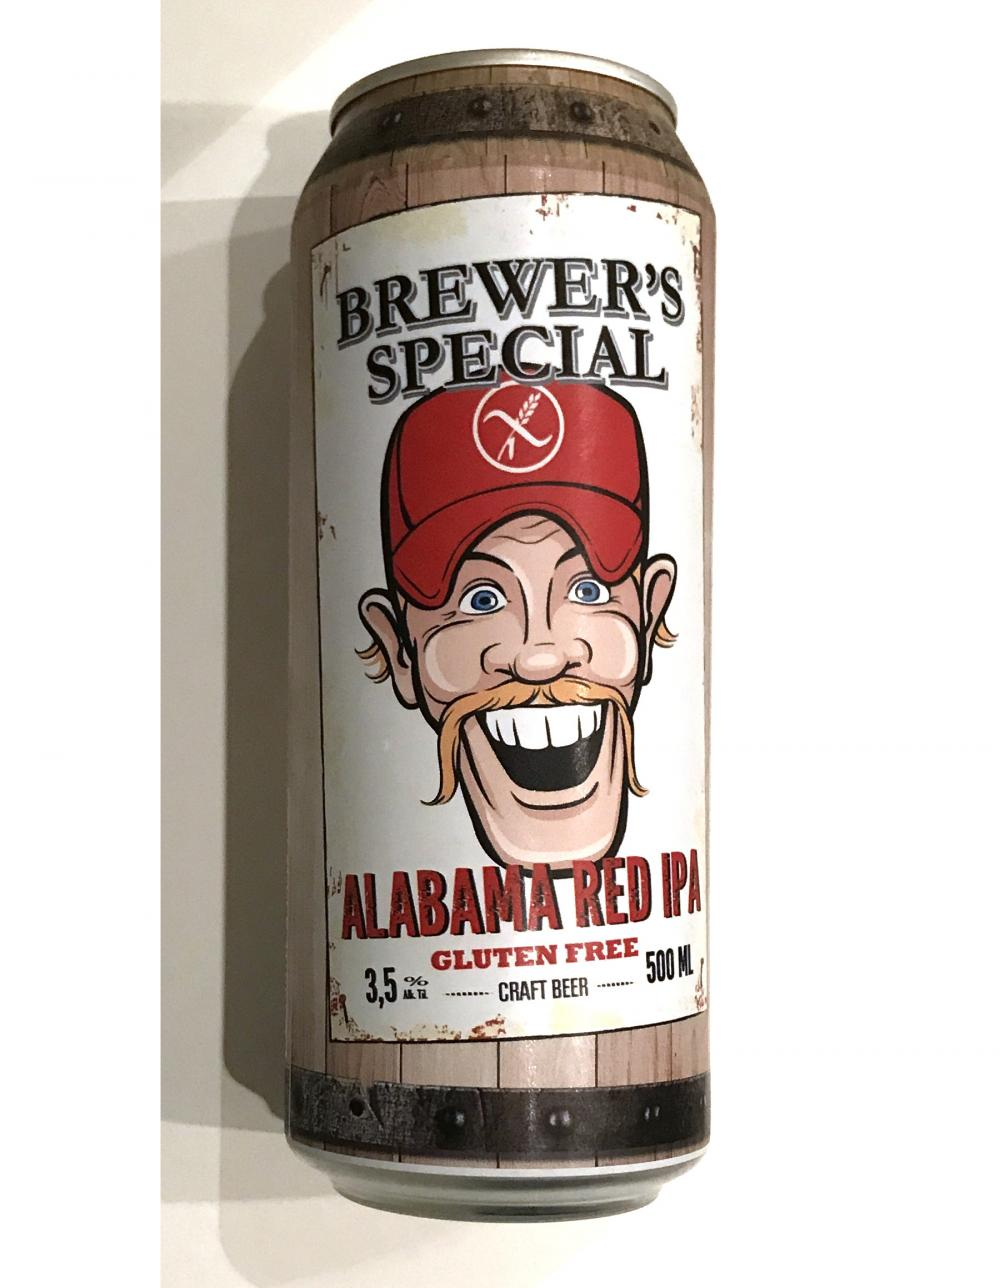 Saimaa Brewing Co Brewer's Special Alabama Red IPA 3.5% 500ml